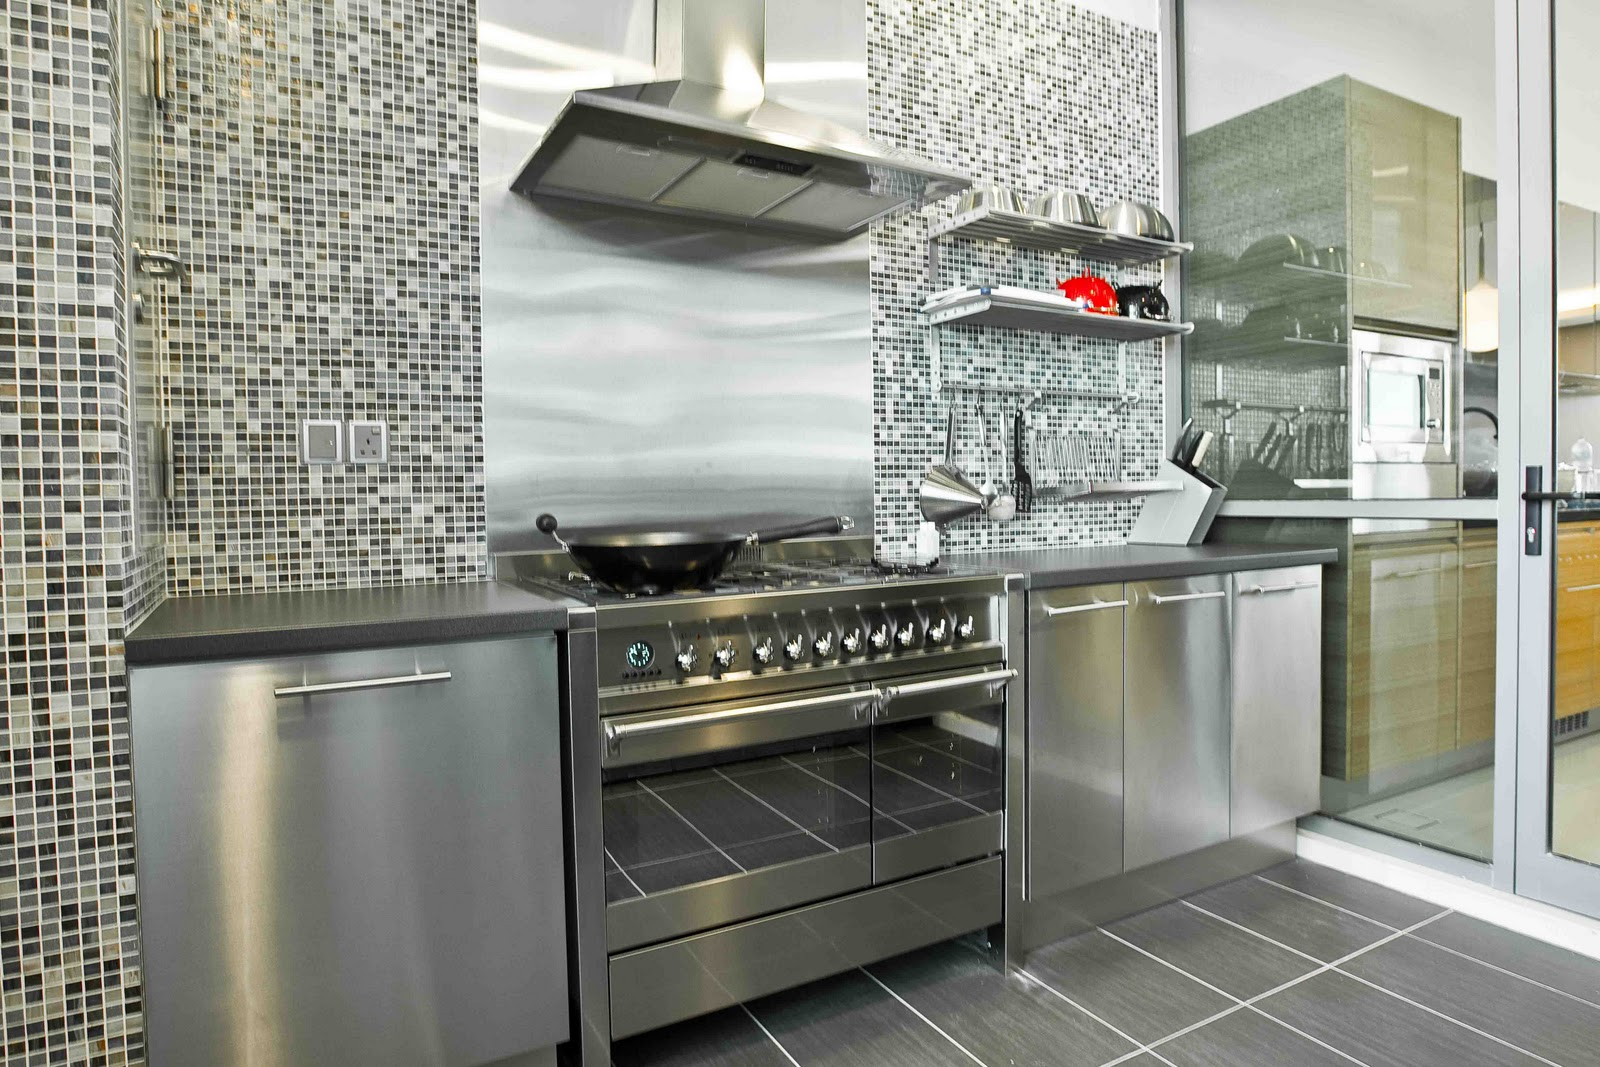 100+ [ Mosaic Tile Backsplash Ideas ] | 4x4 Tile Backsplash Set At ...